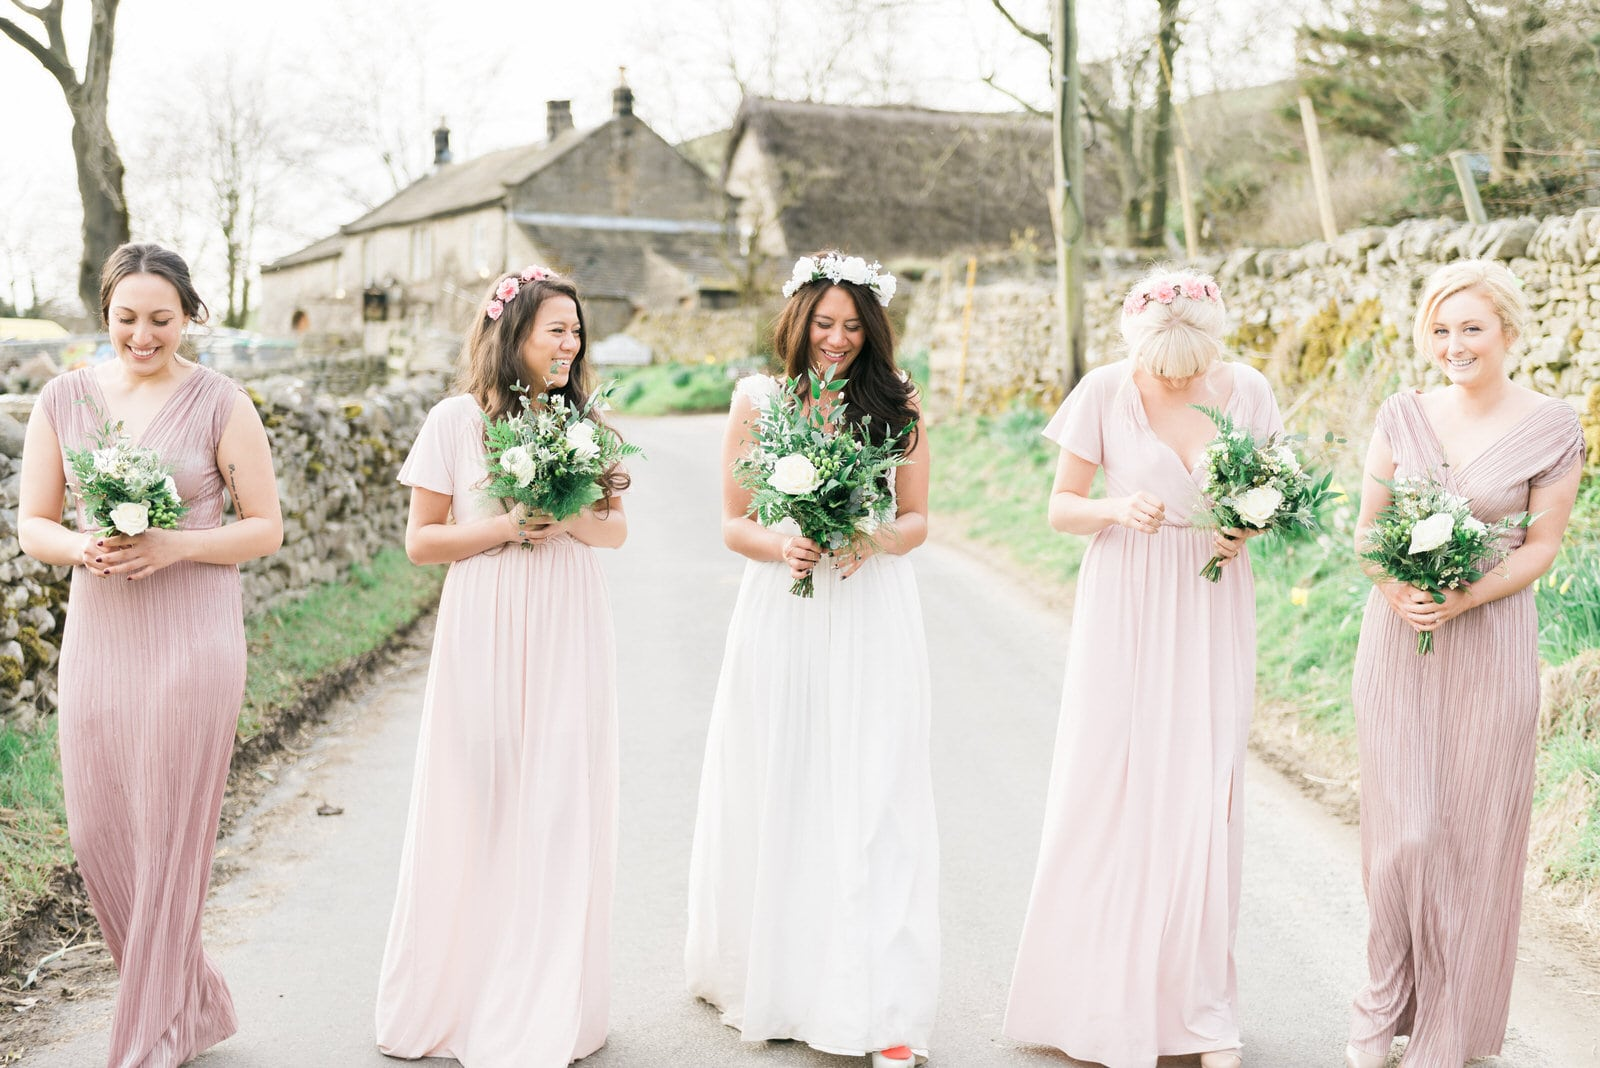 Beautiful wedding photography - Bride with her bridesmaids